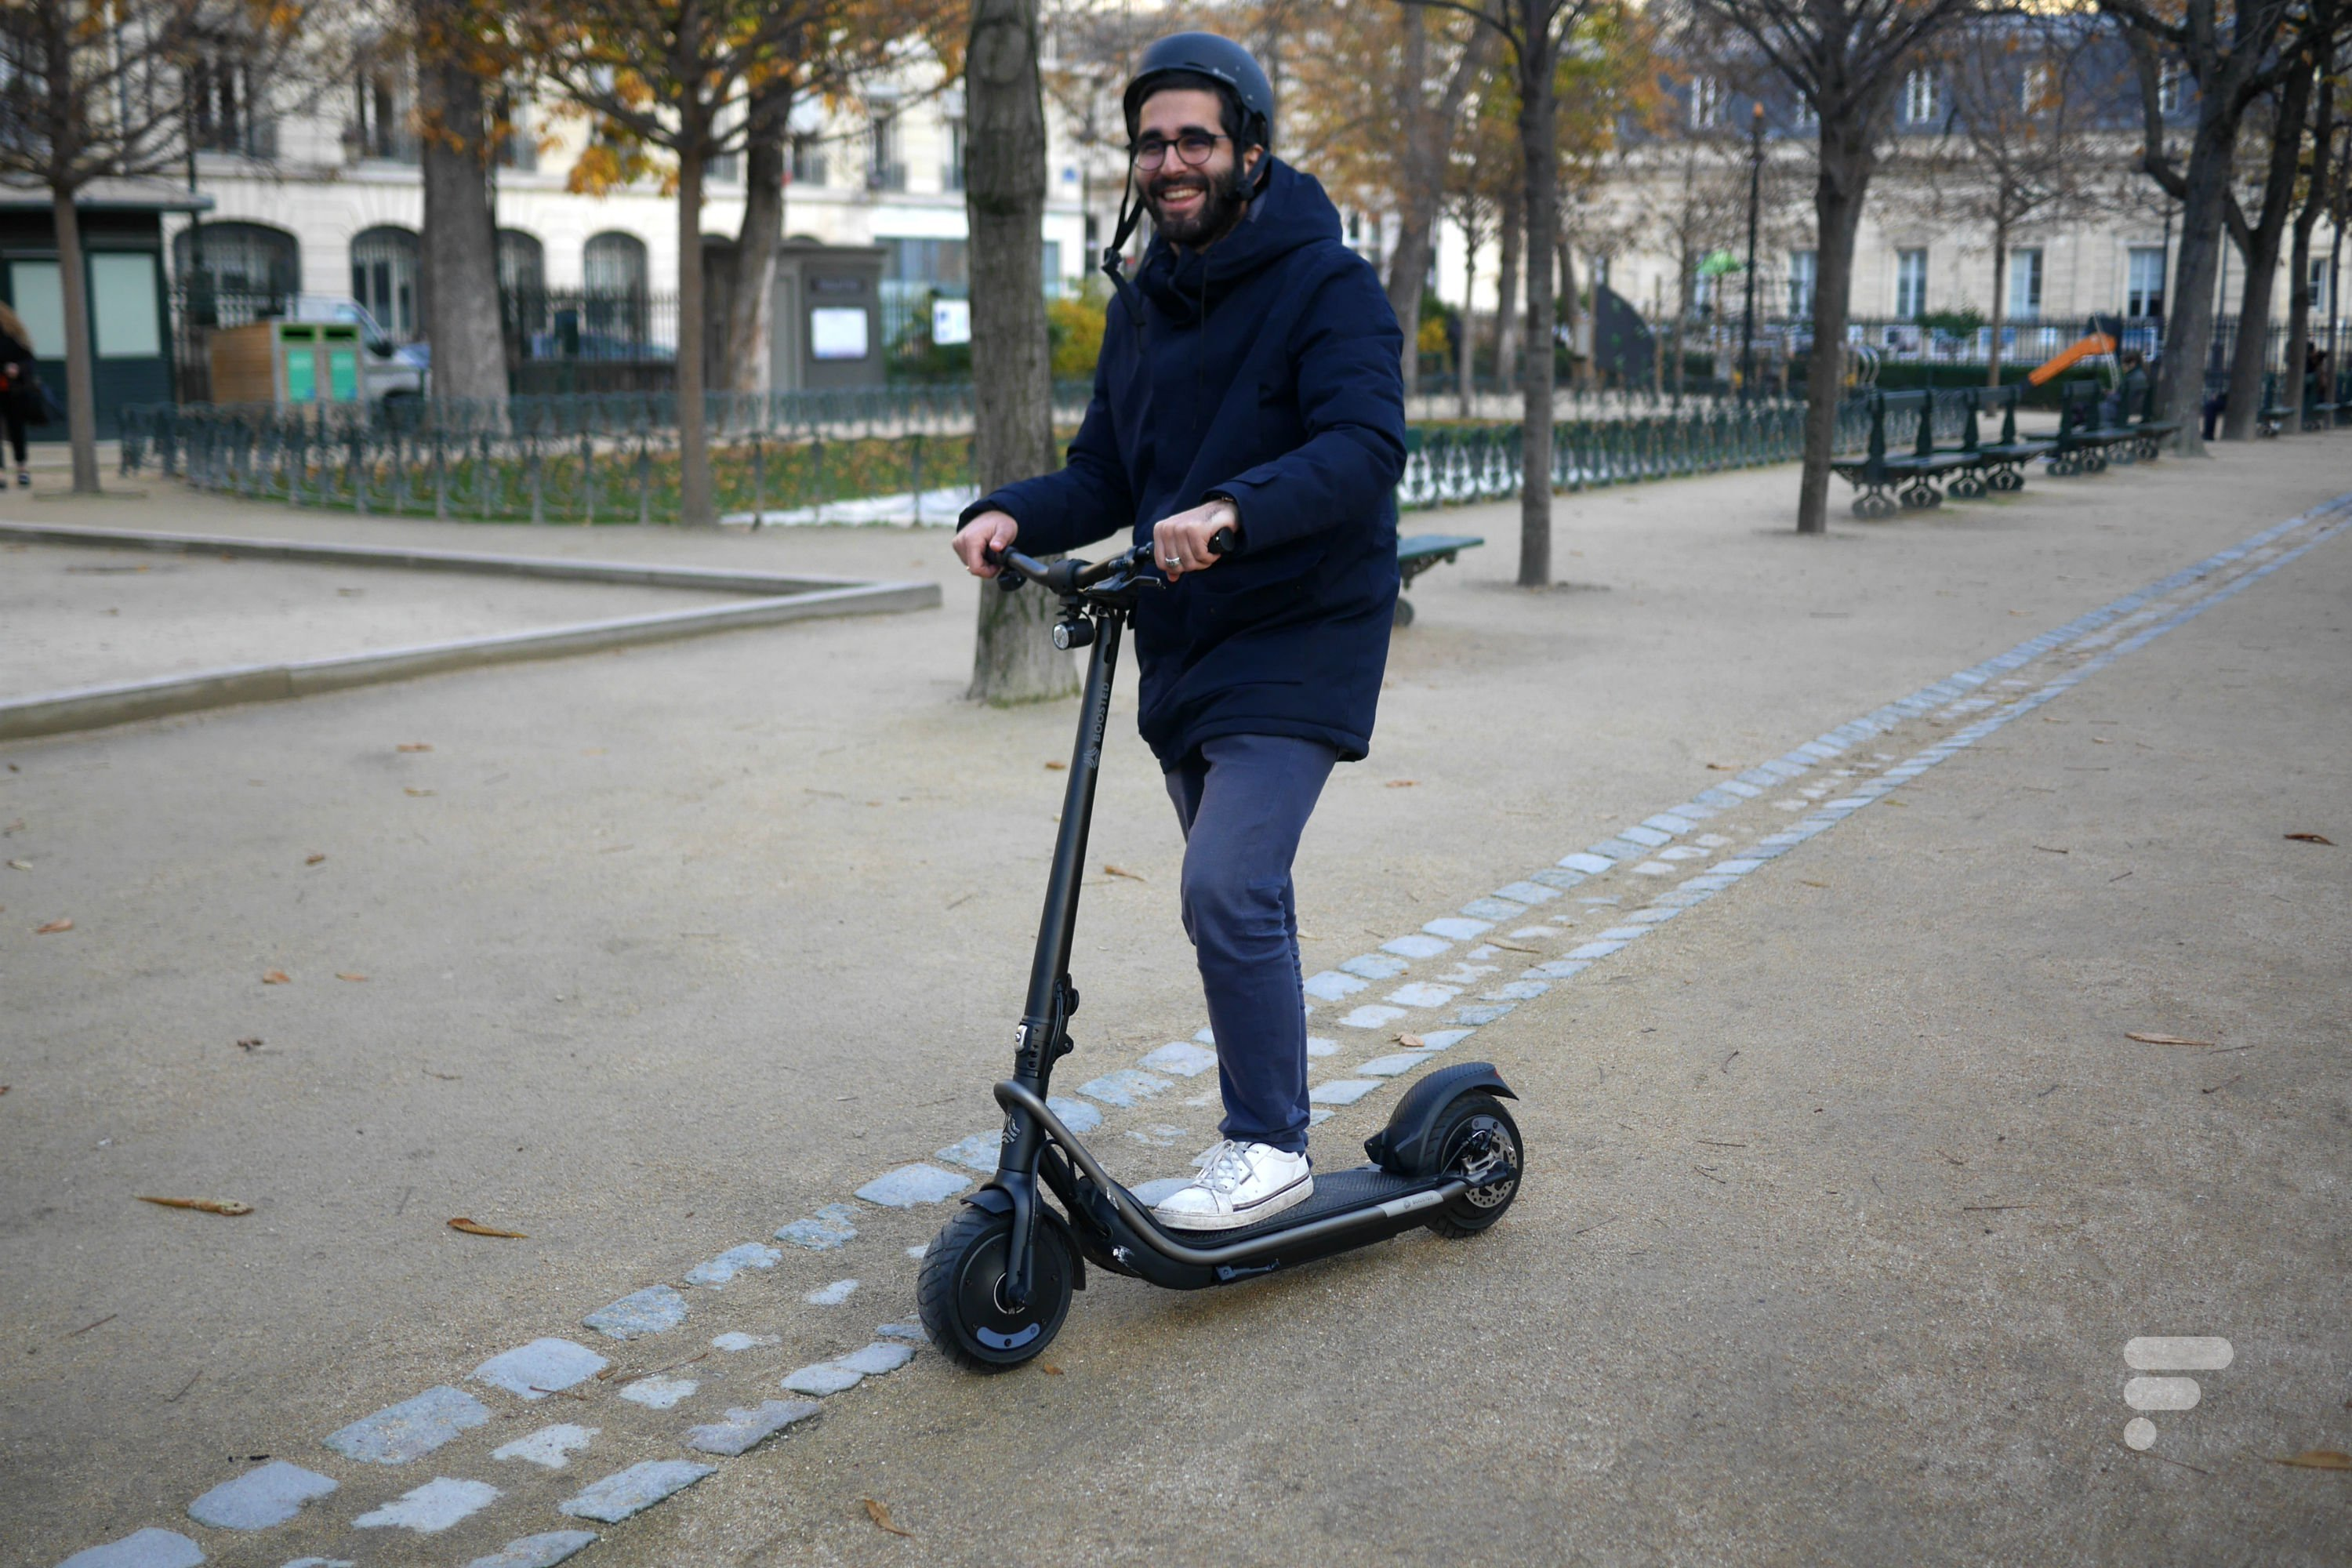 Test de la Boosted REV : la trottinette qui vend du rêve